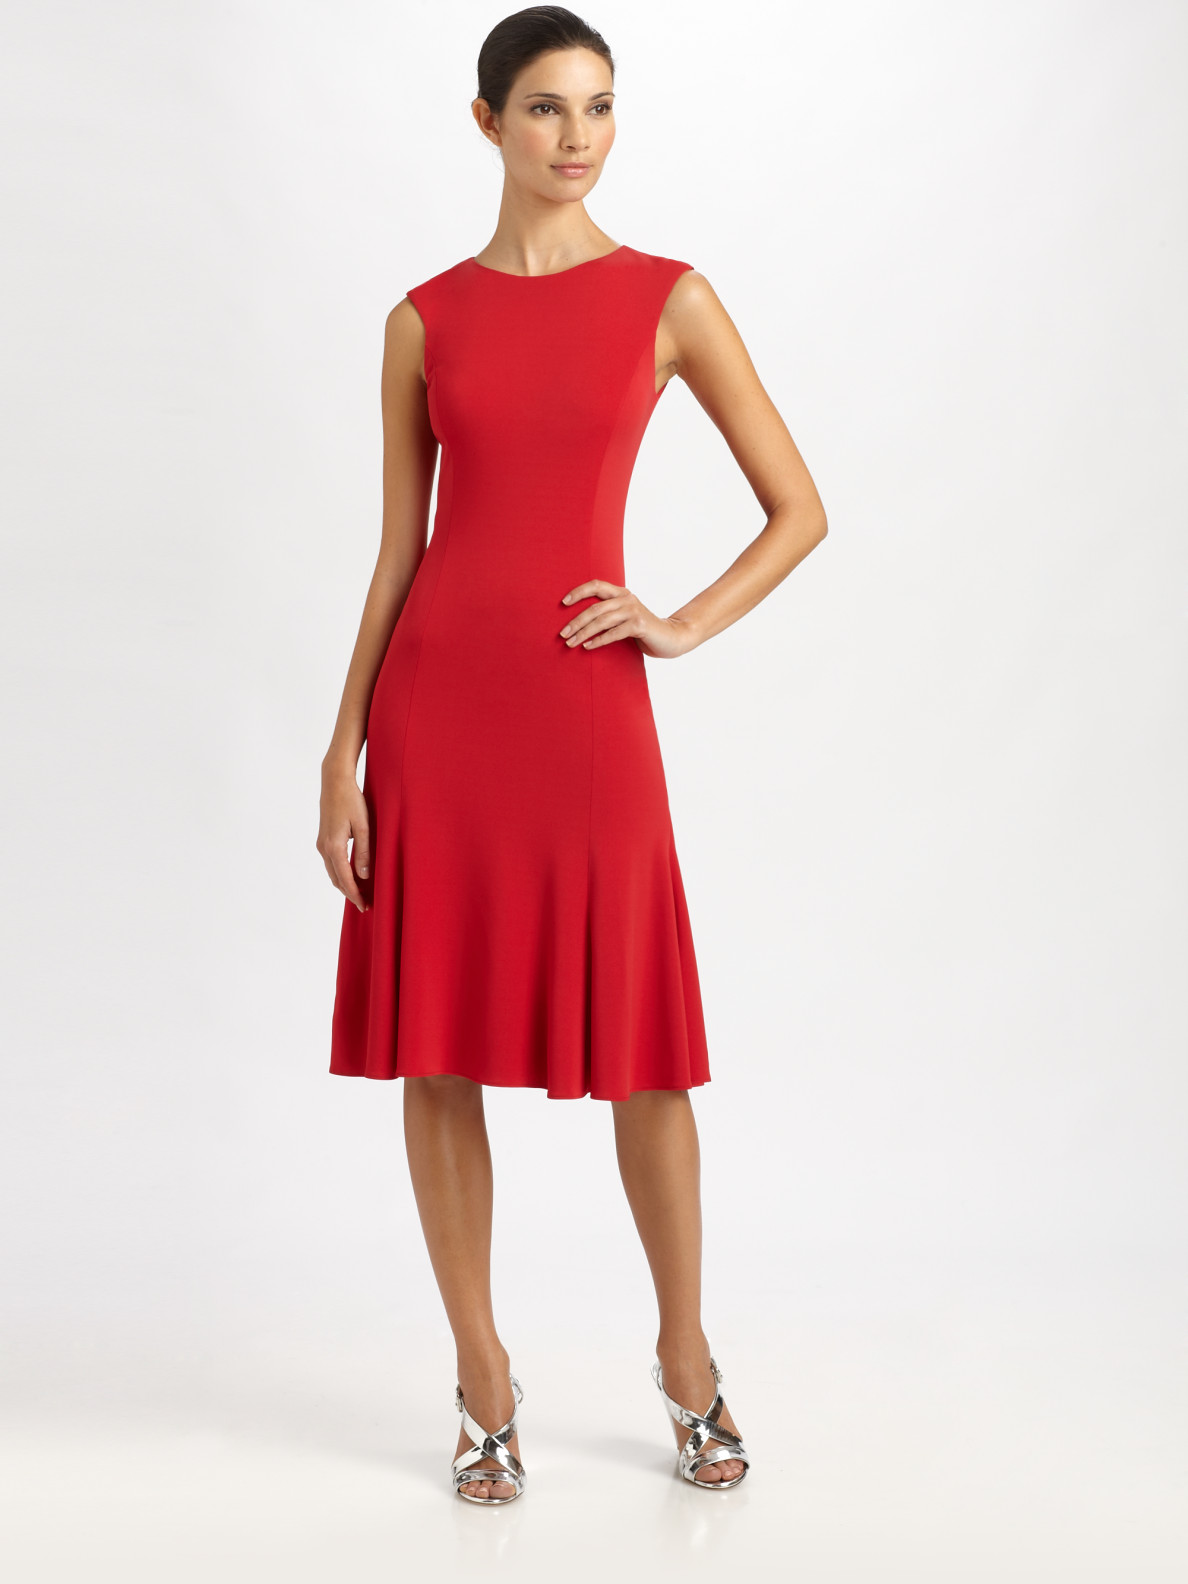 Lauren Ralph red dress pictures forecast to wear for everyday in 2019